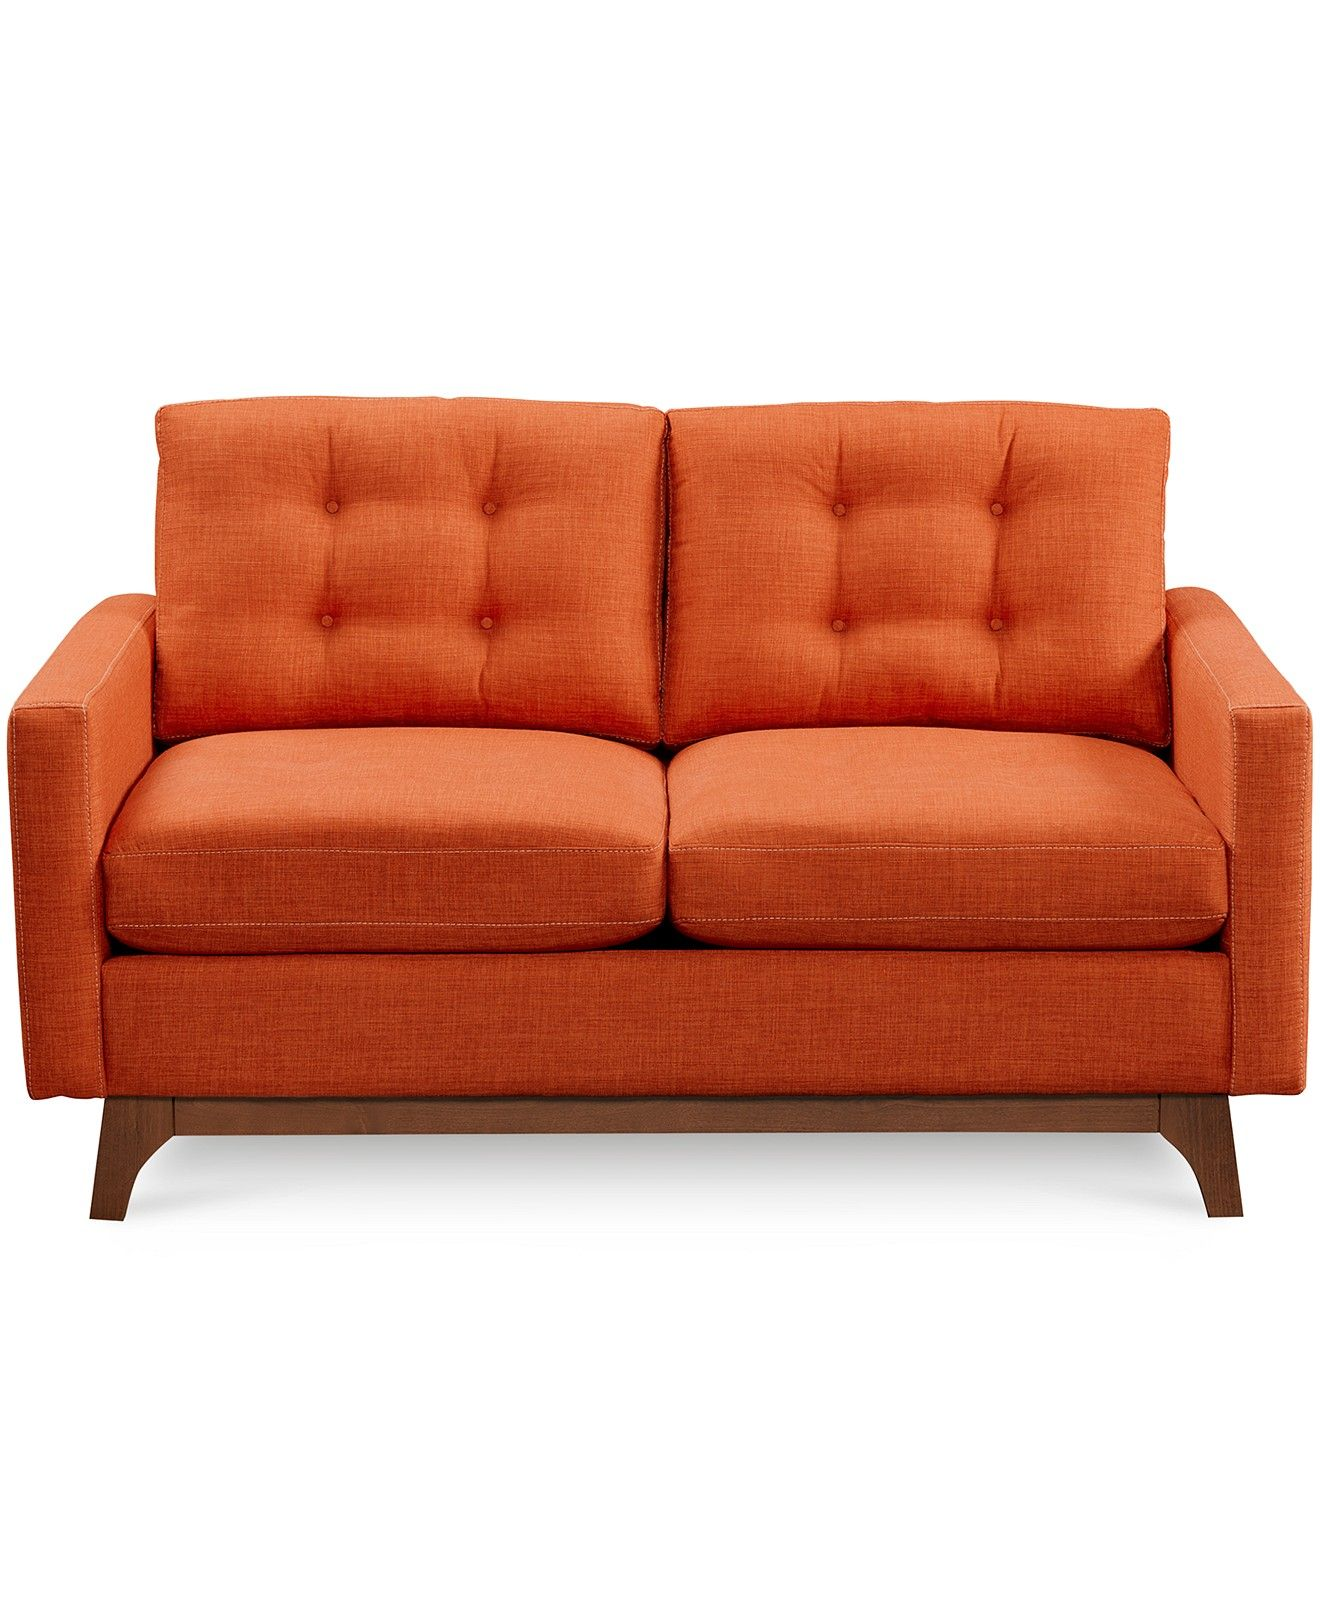 Fabric Loveseat Couches Sofas